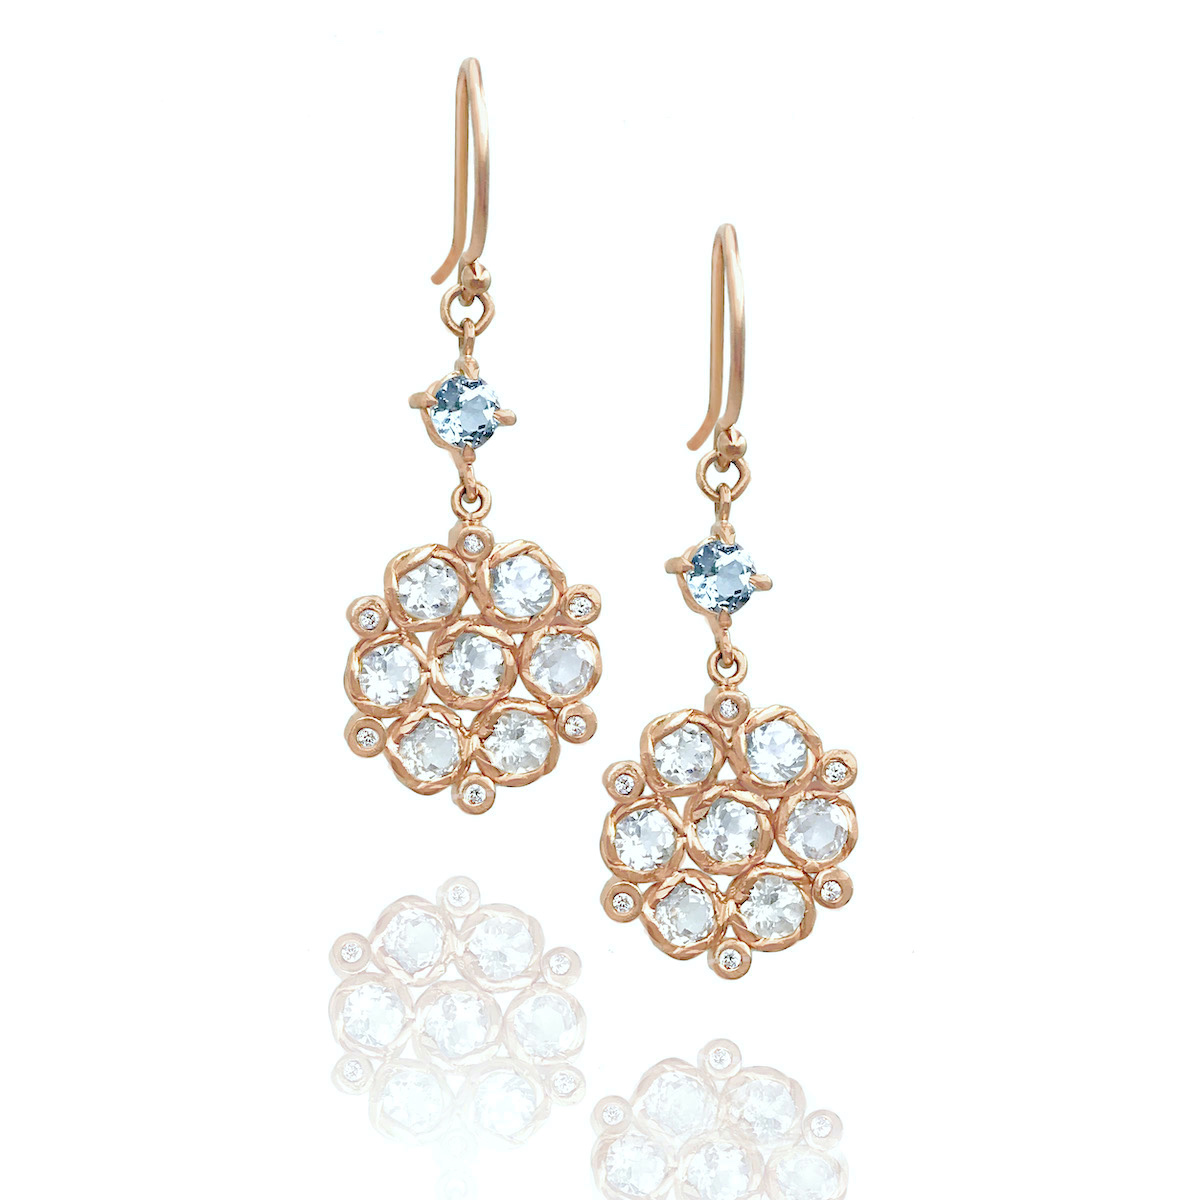 aquamarine-accent-white-zircon-floral-drop-earrings-jewelyrie-RGR